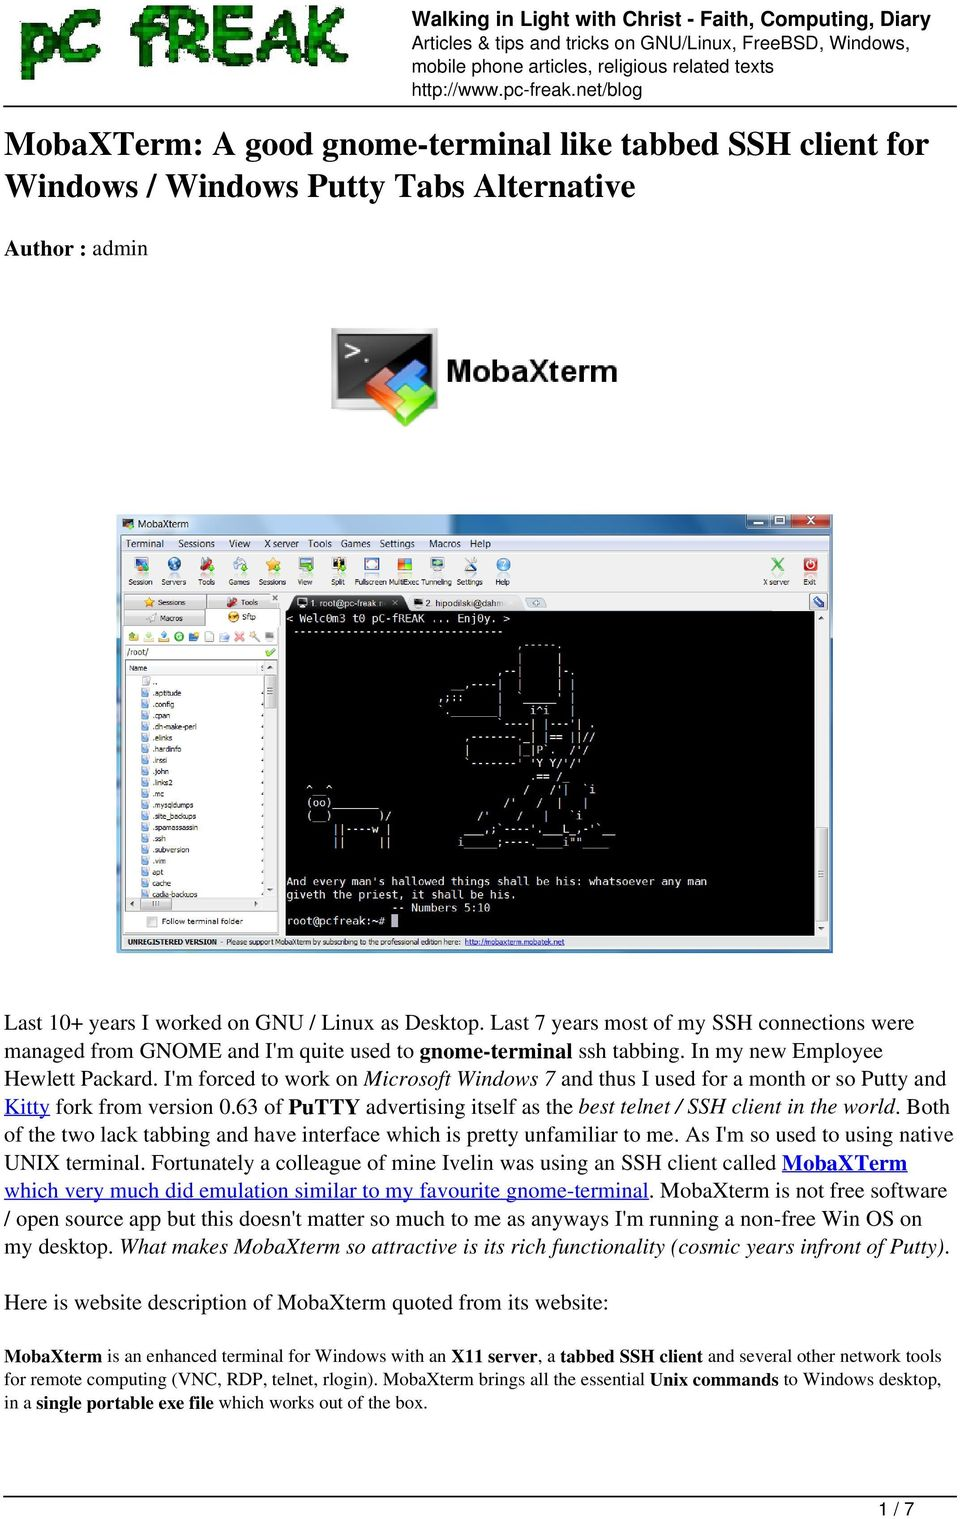 MobaXTerm: A good gnome-terminal like tabbed SSH client for Windows